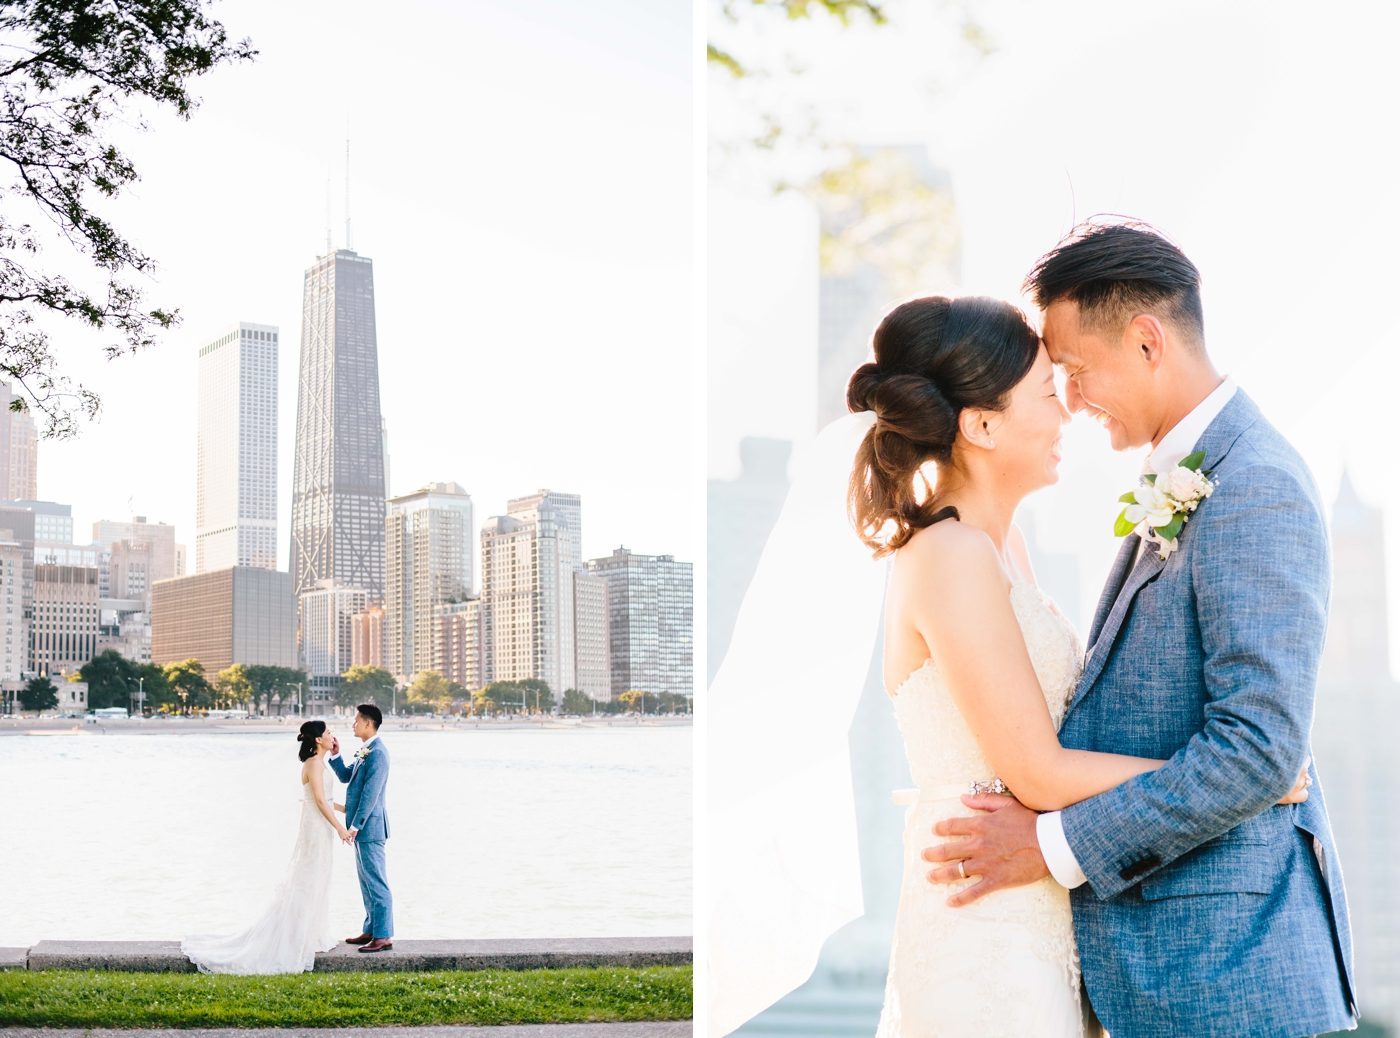 chicago-fine-art-wedding-photography-rayandsilvia14